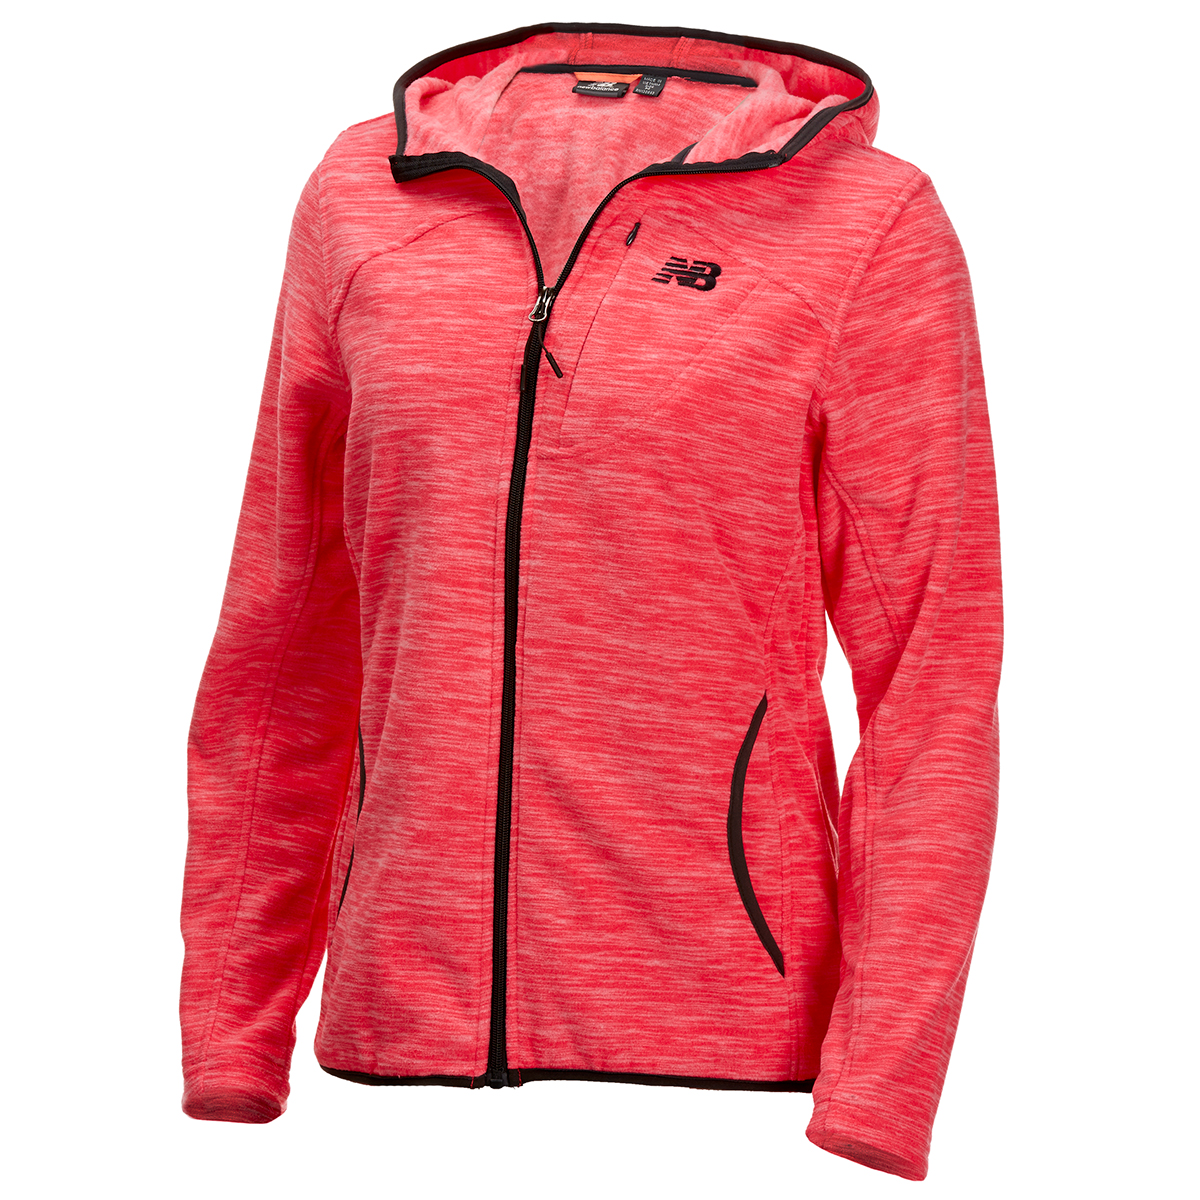 New Balance Women's Polar Fleece Space-Dye Full-Zip Hoodie - Red, S